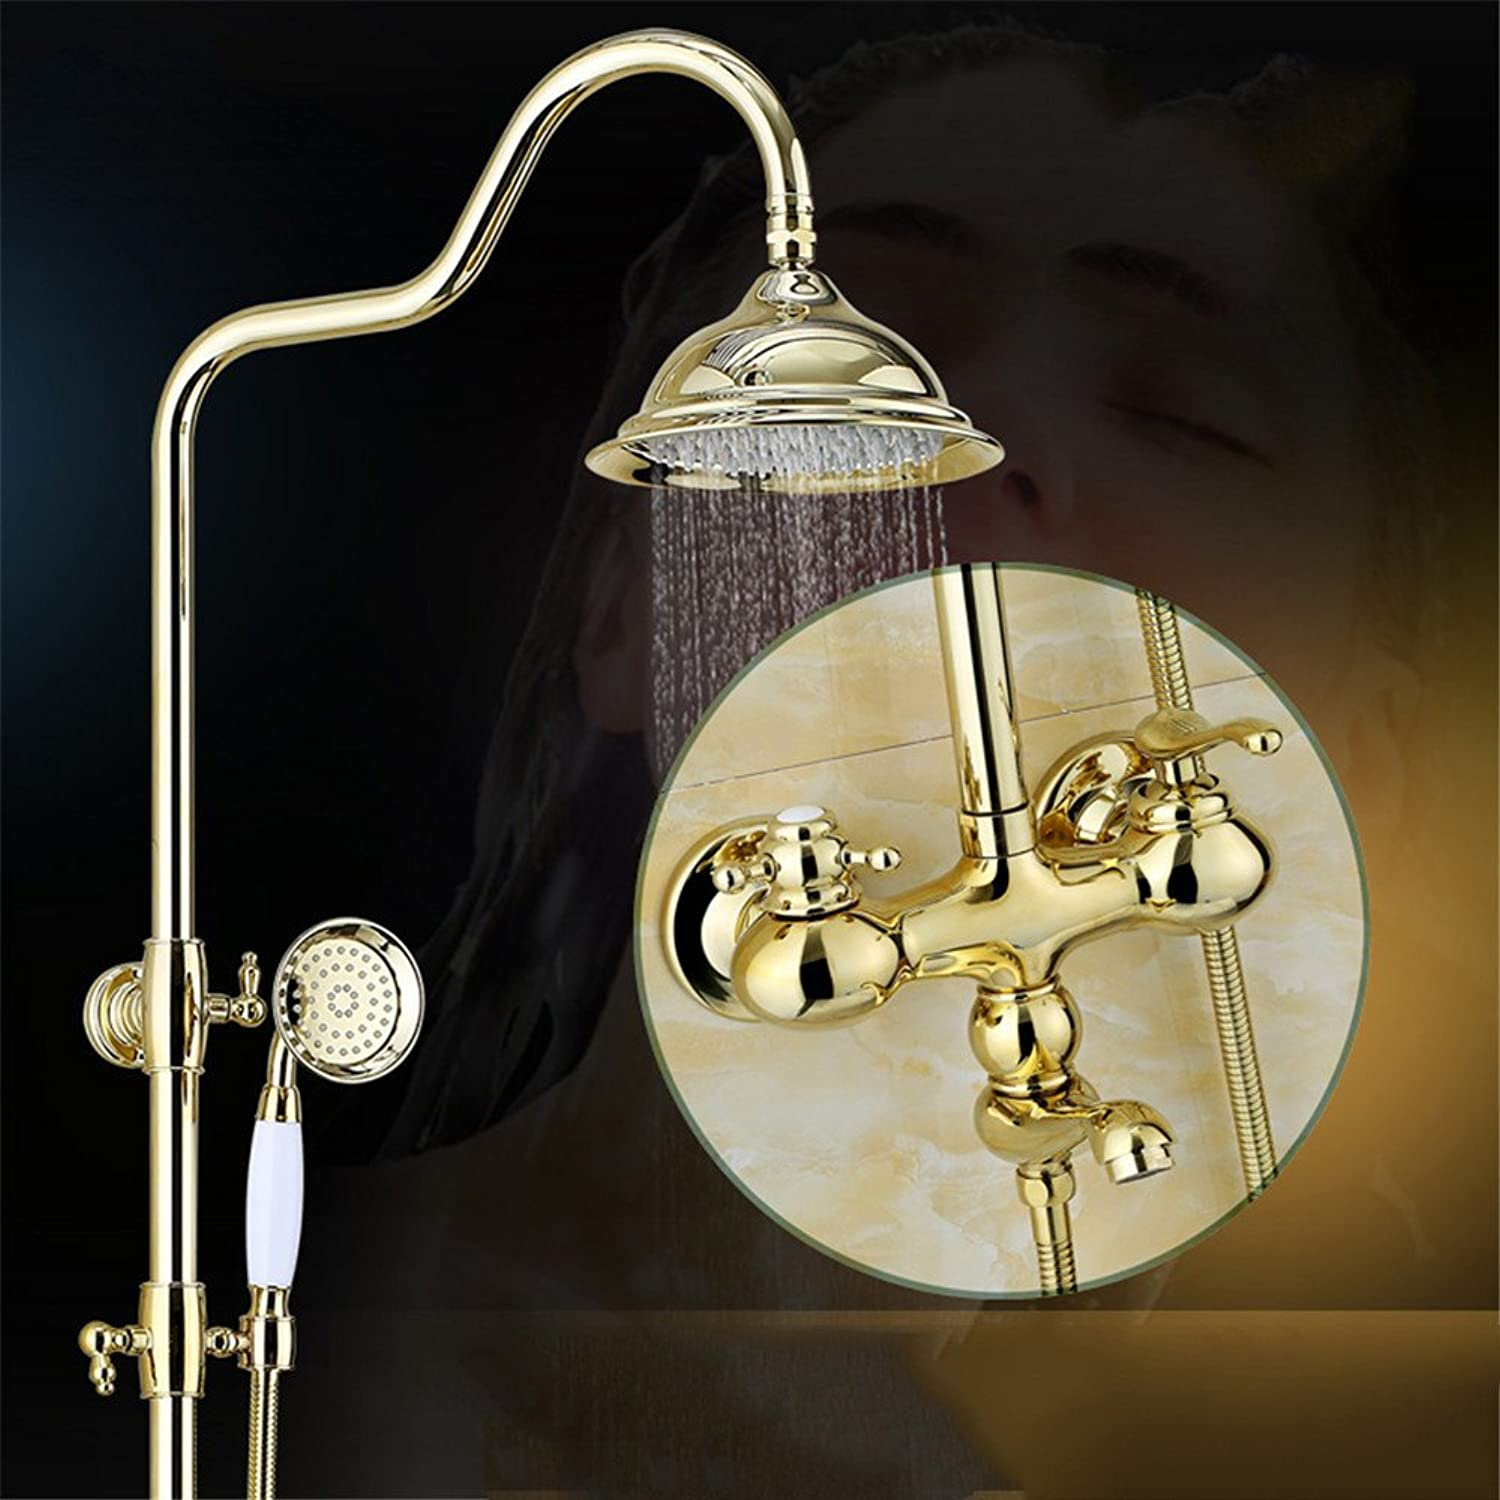 Lalaky Taps Faucet Kitchen Mixer Sink Waterfall Bathroom Mixer Basin Mixer Tap for Kitchen Bathroom and Washroom golden Shower Lift Copper Body Retro gold Plated